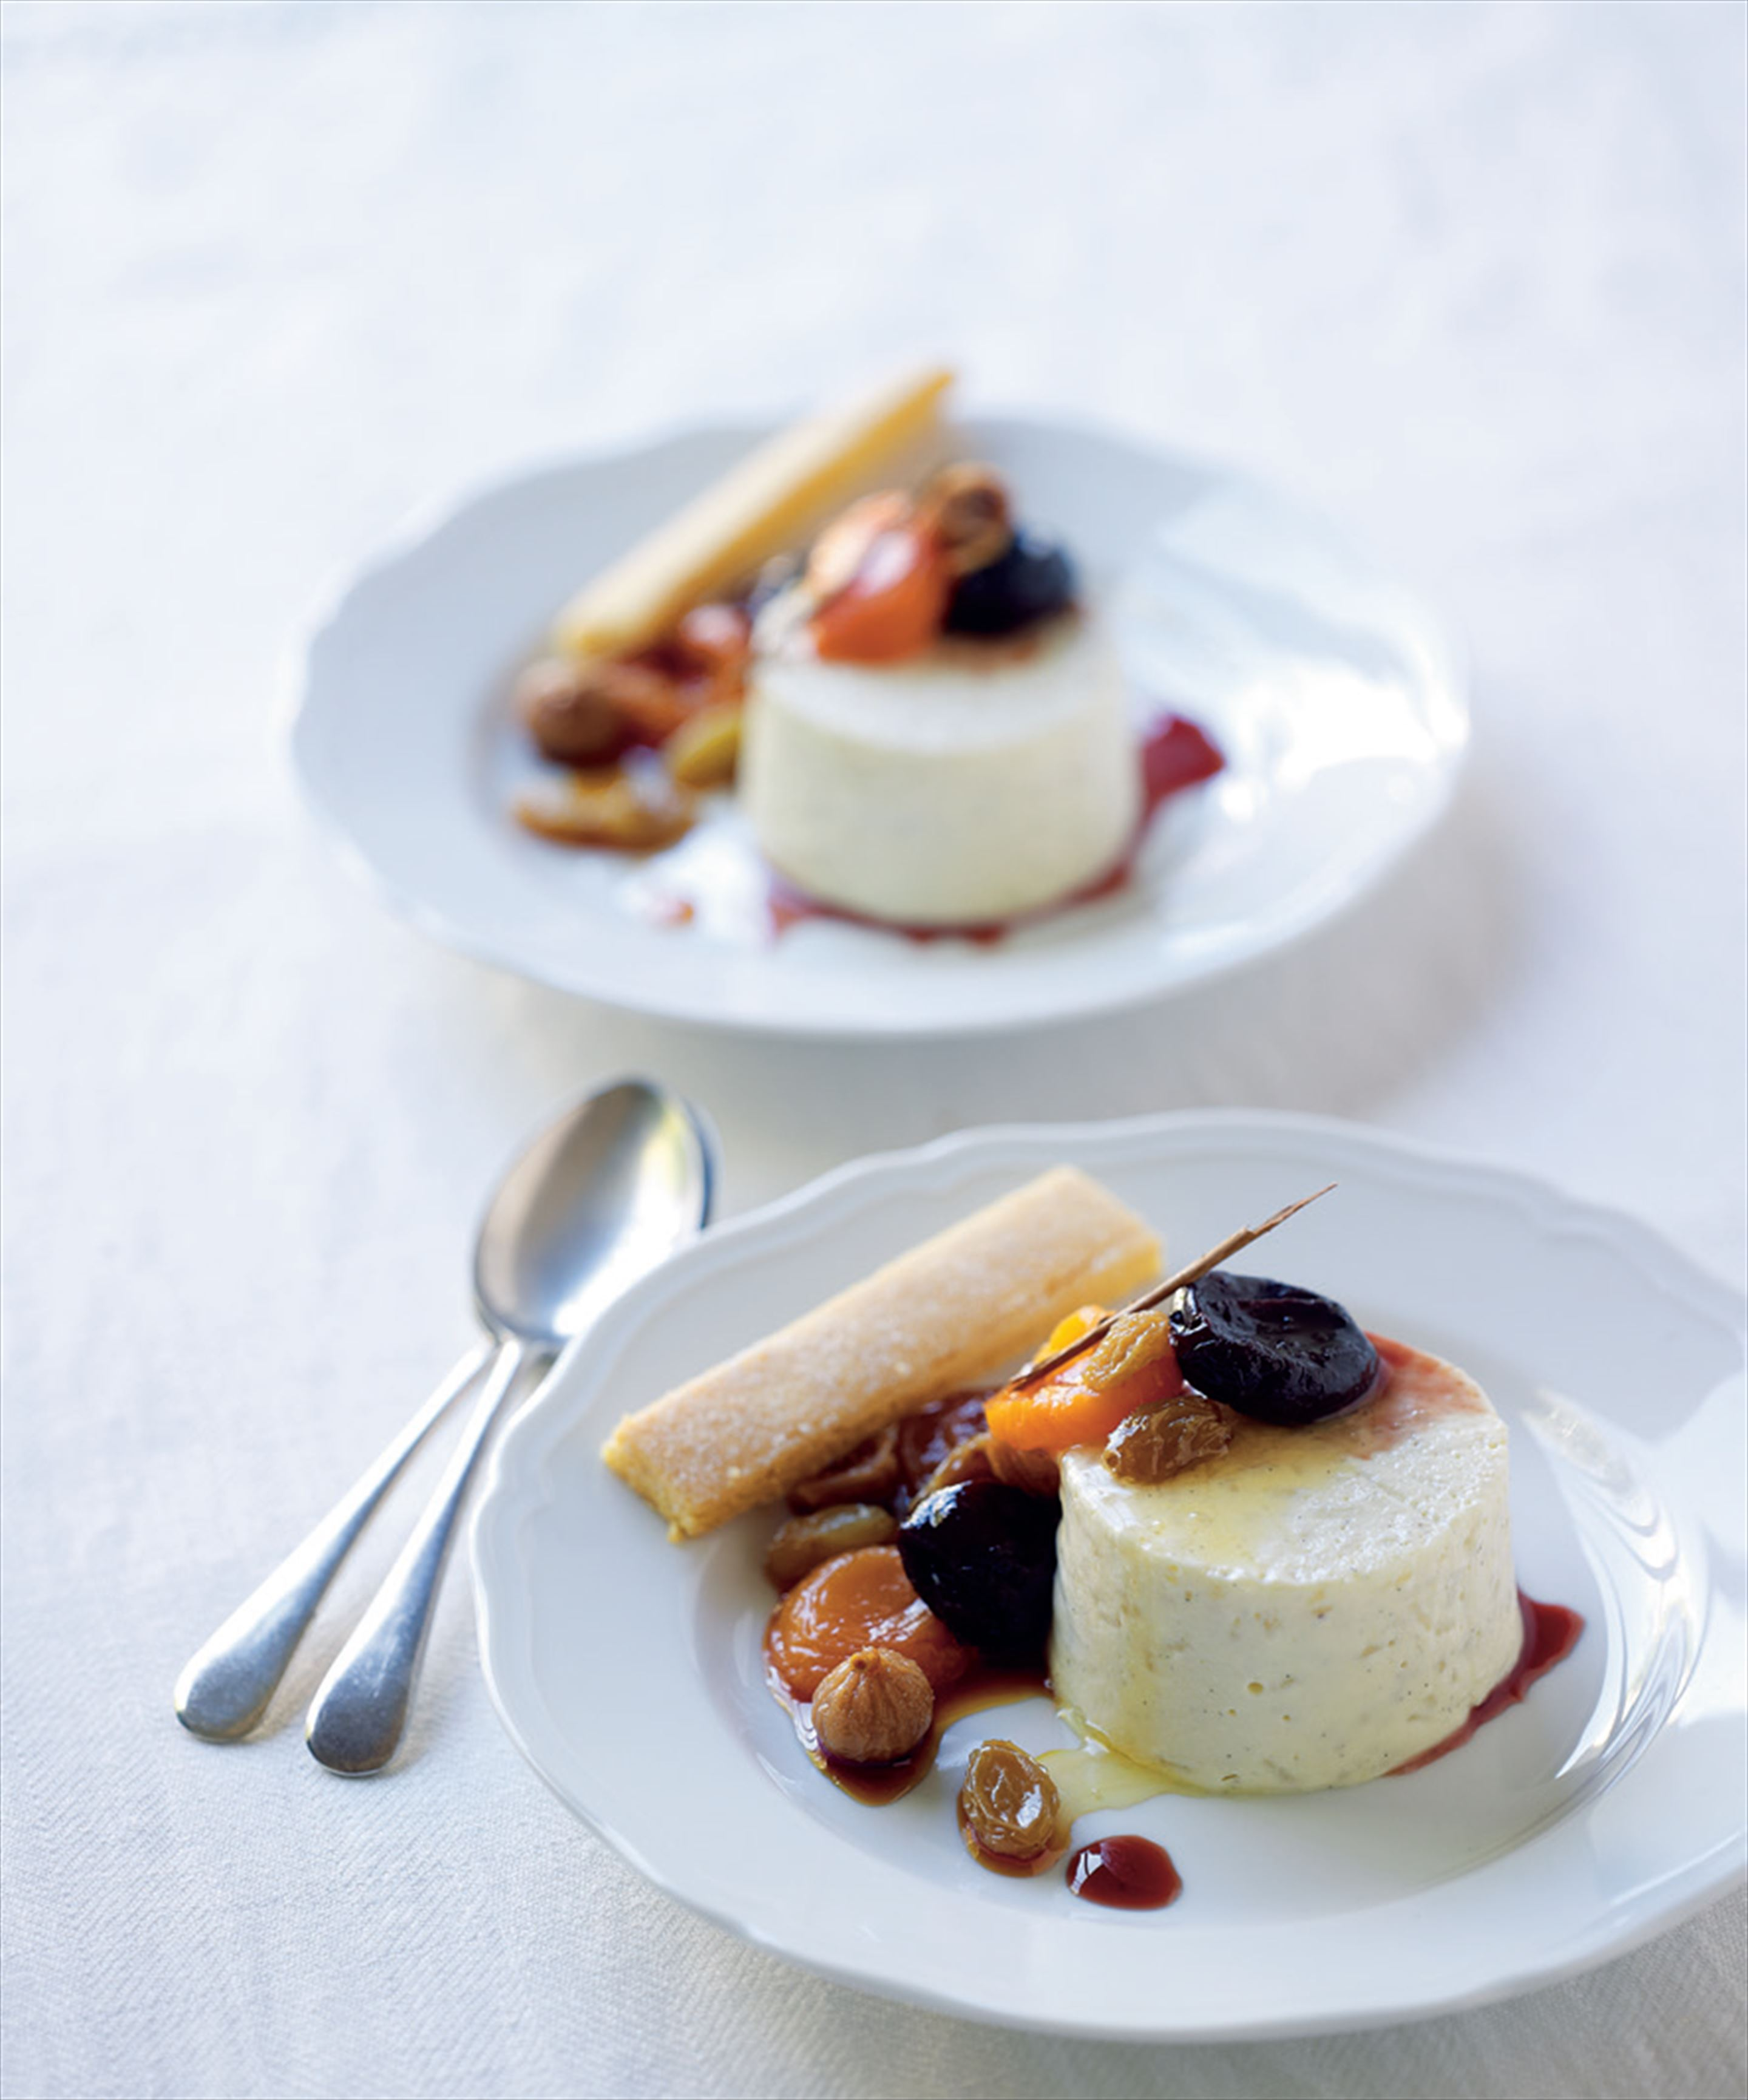 Rice pudding with poached dried fruit